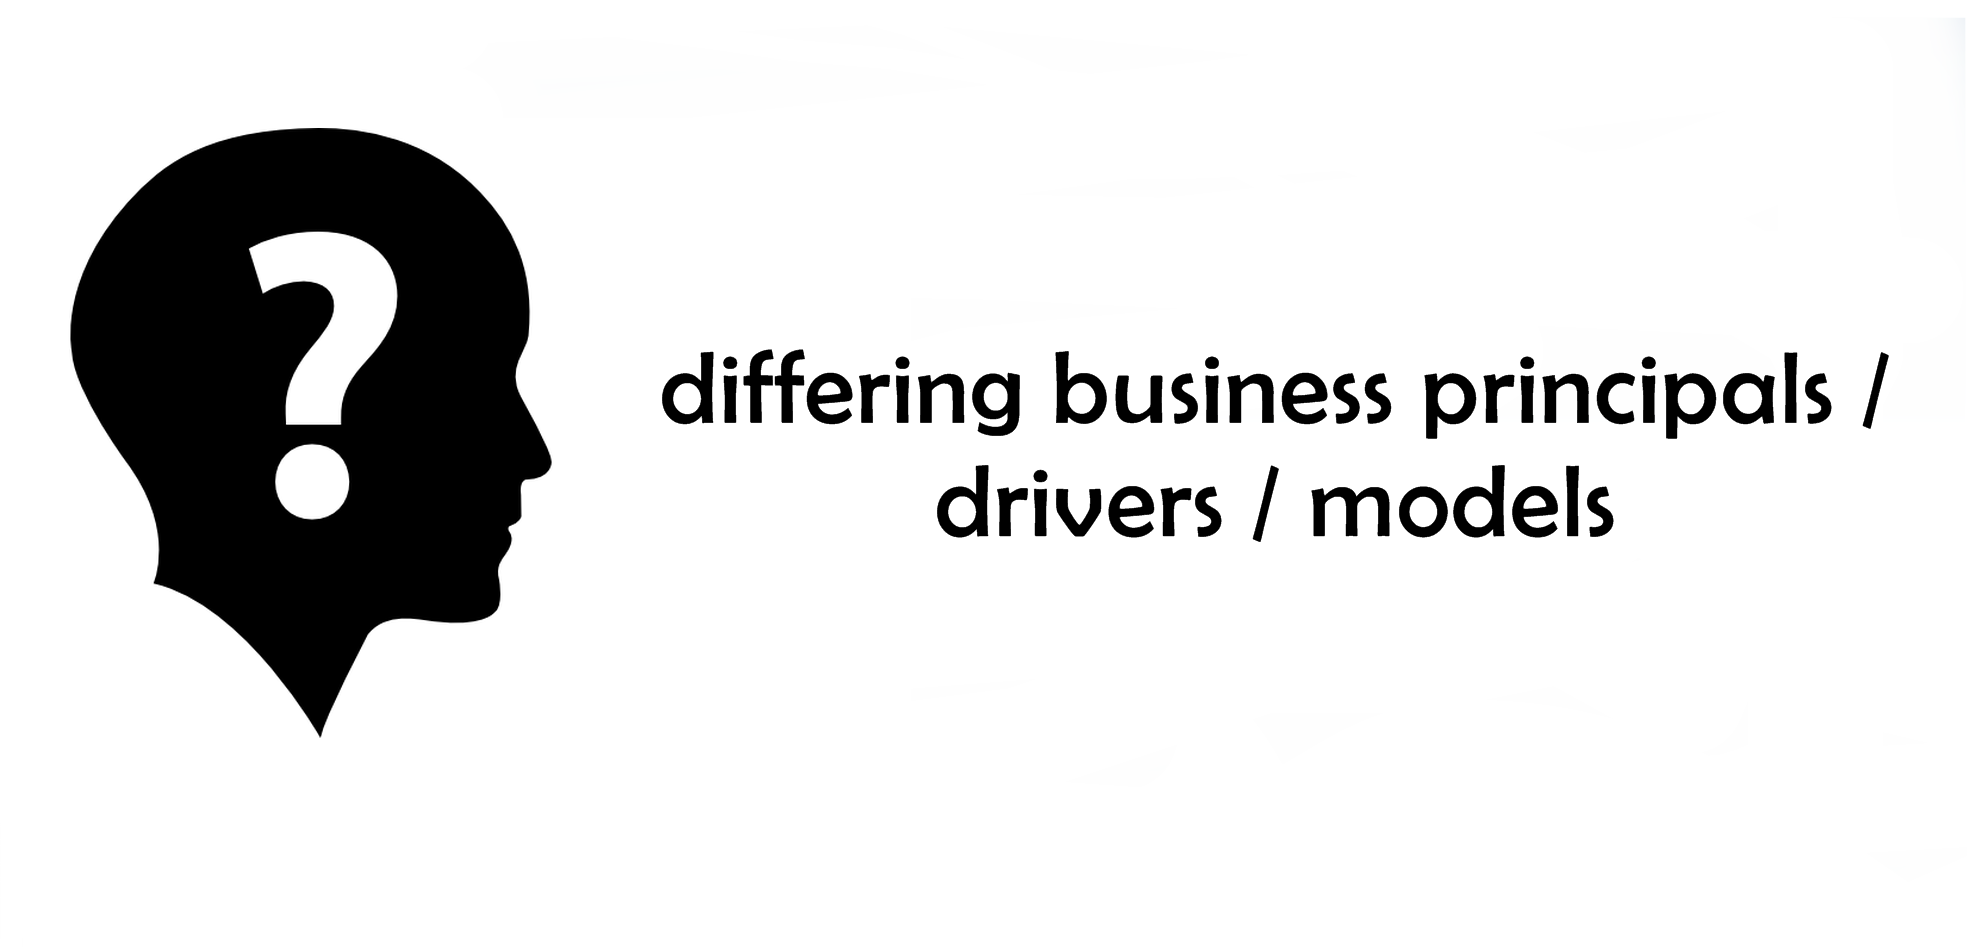 differing business principals / drivers / models